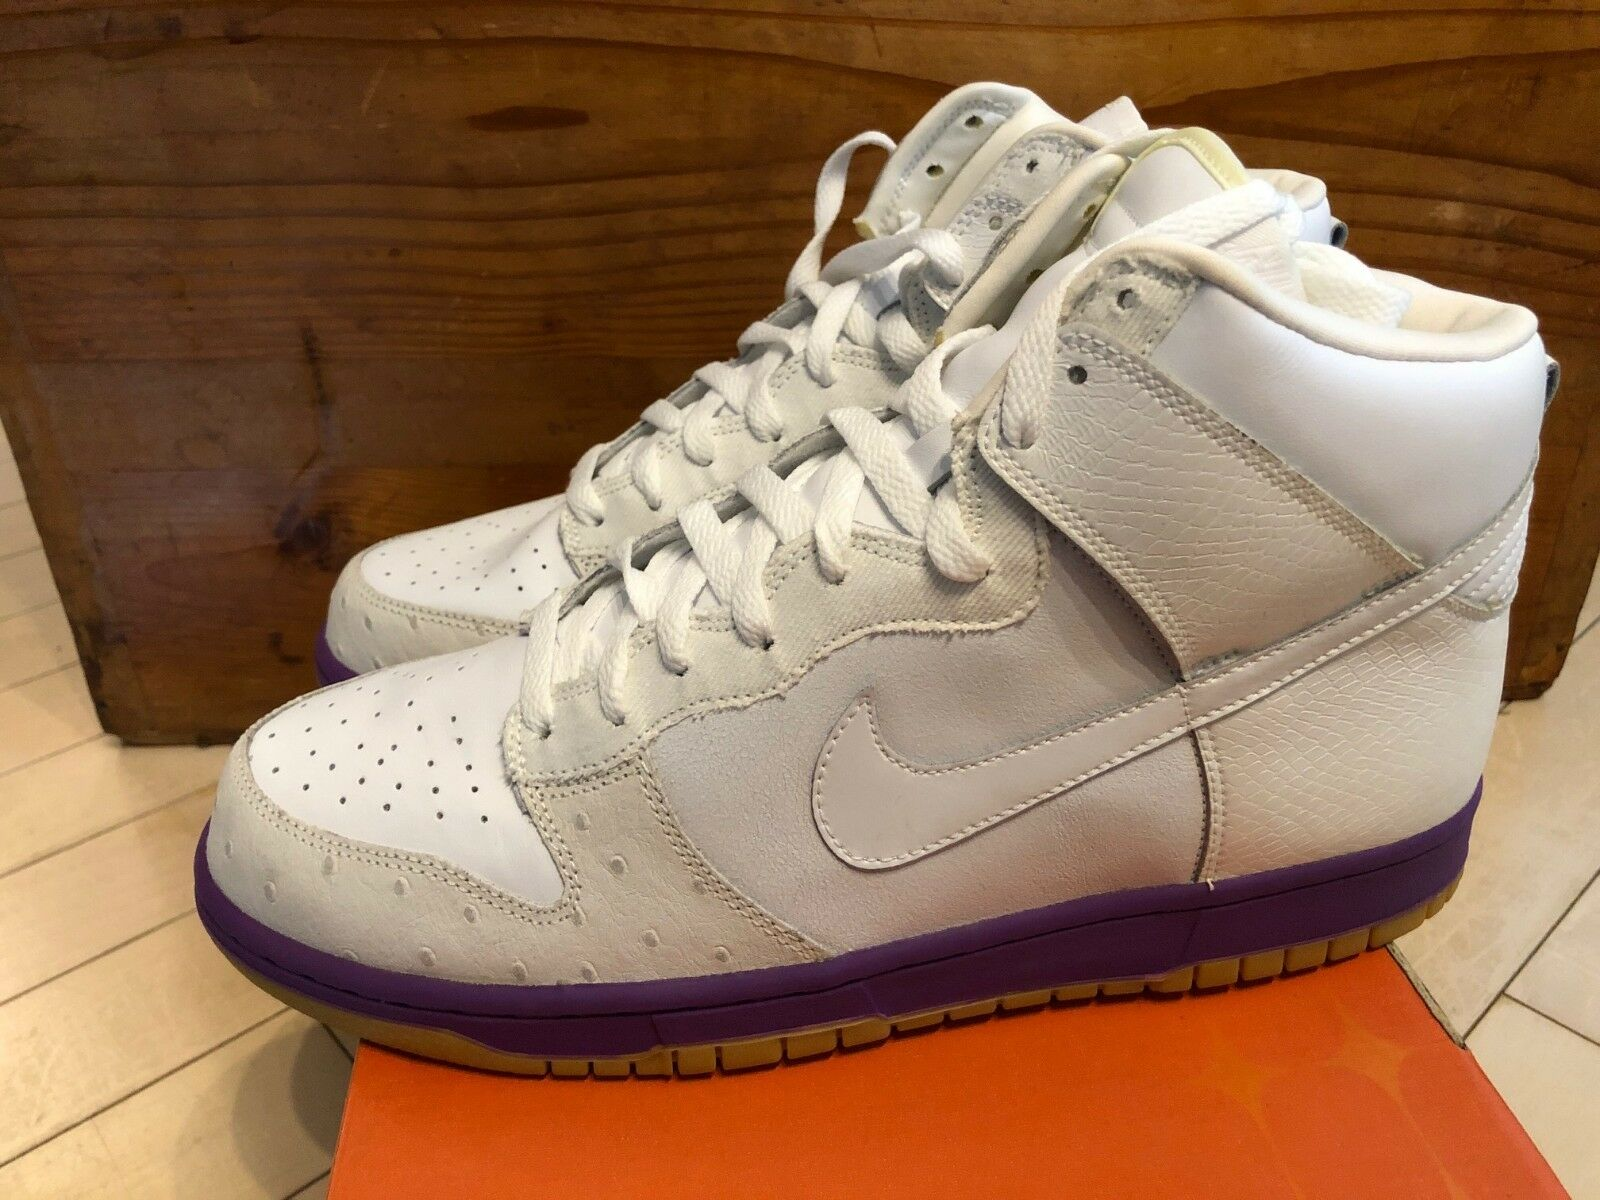 2005 Nike Dunk High Deluxe Ostrich White Purple Gum sz 11